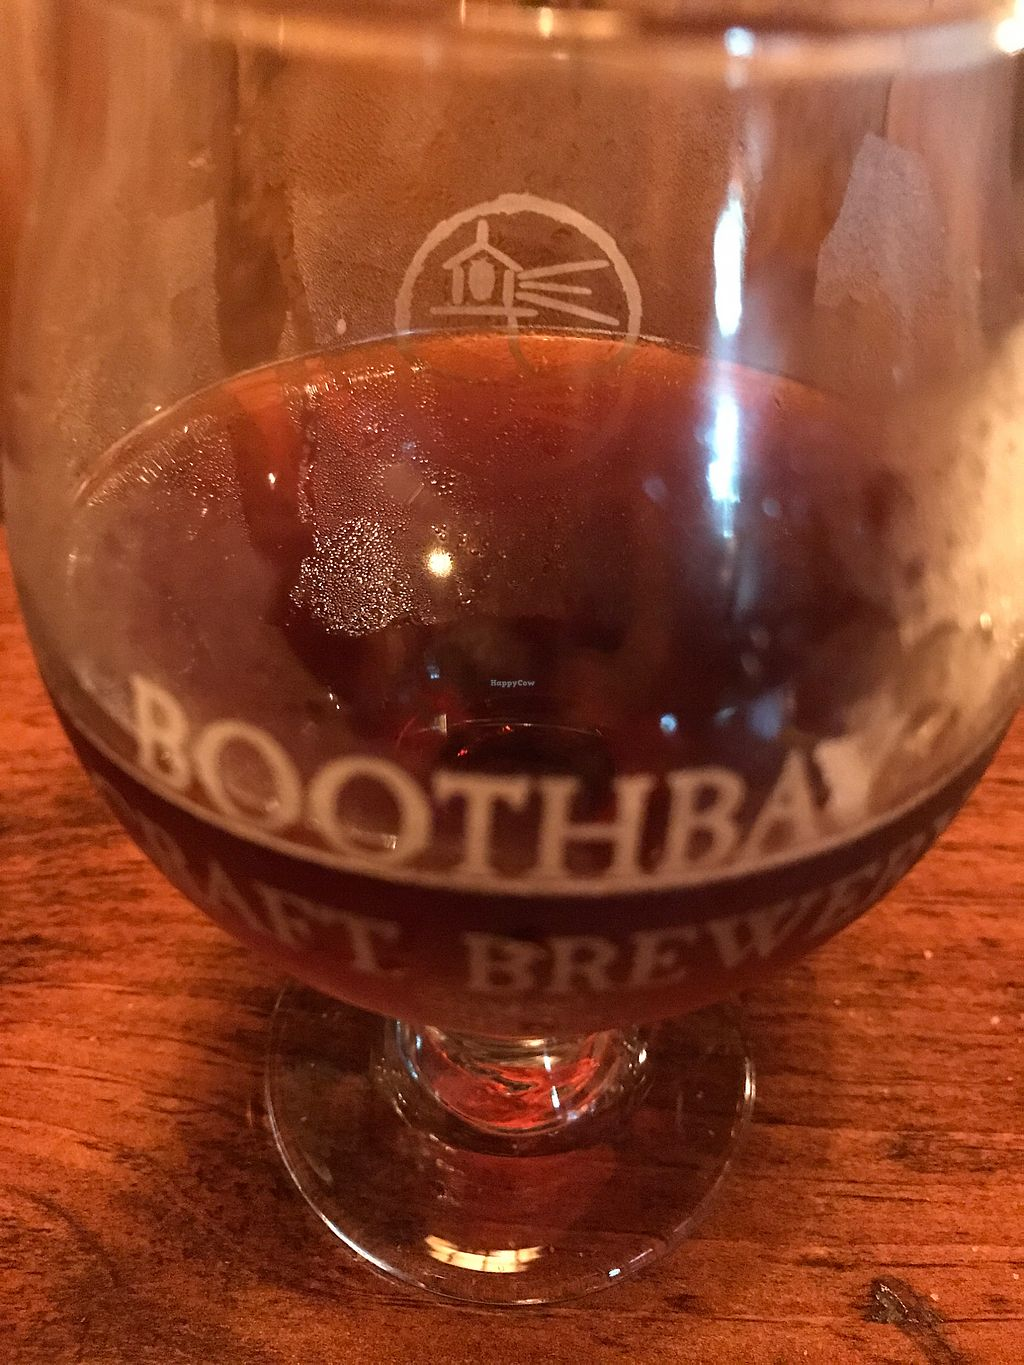 """Photo of Boothbay Craft Brewery  by <a href=""""/members/profile/Sarah%20P"""">Sarah P</a> <br/>mmmmm <br/> June 30, 2017  - <a href='/contact/abuse/image/95040/275265'>Report</a>"""